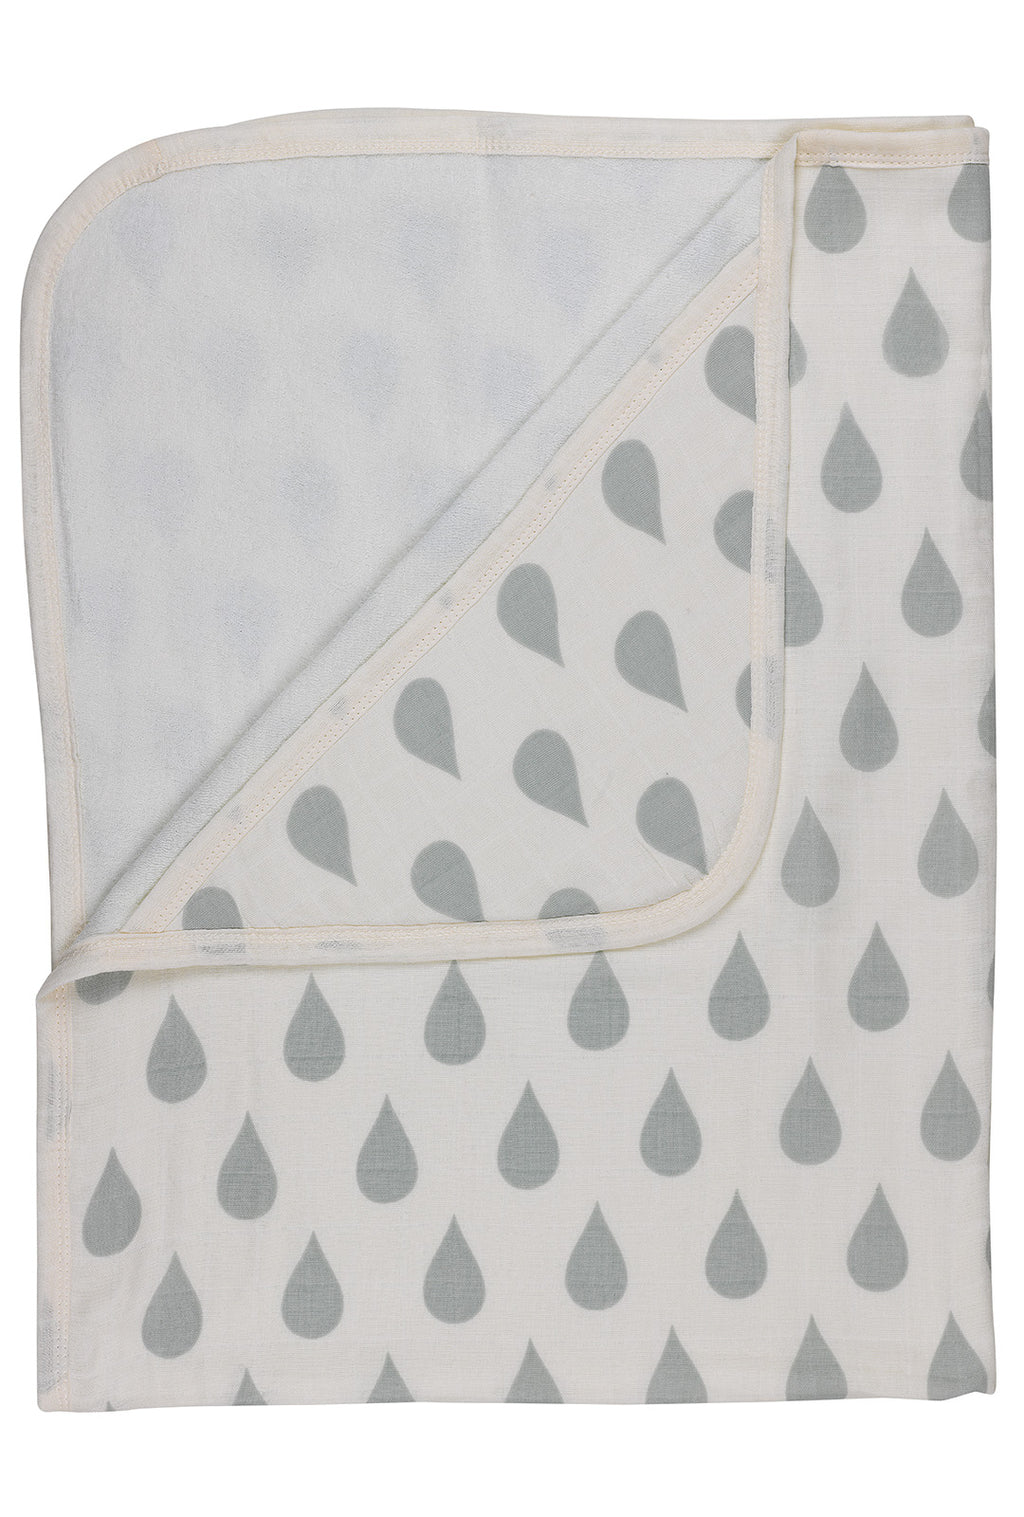 Big Water Drops Hooded Towel